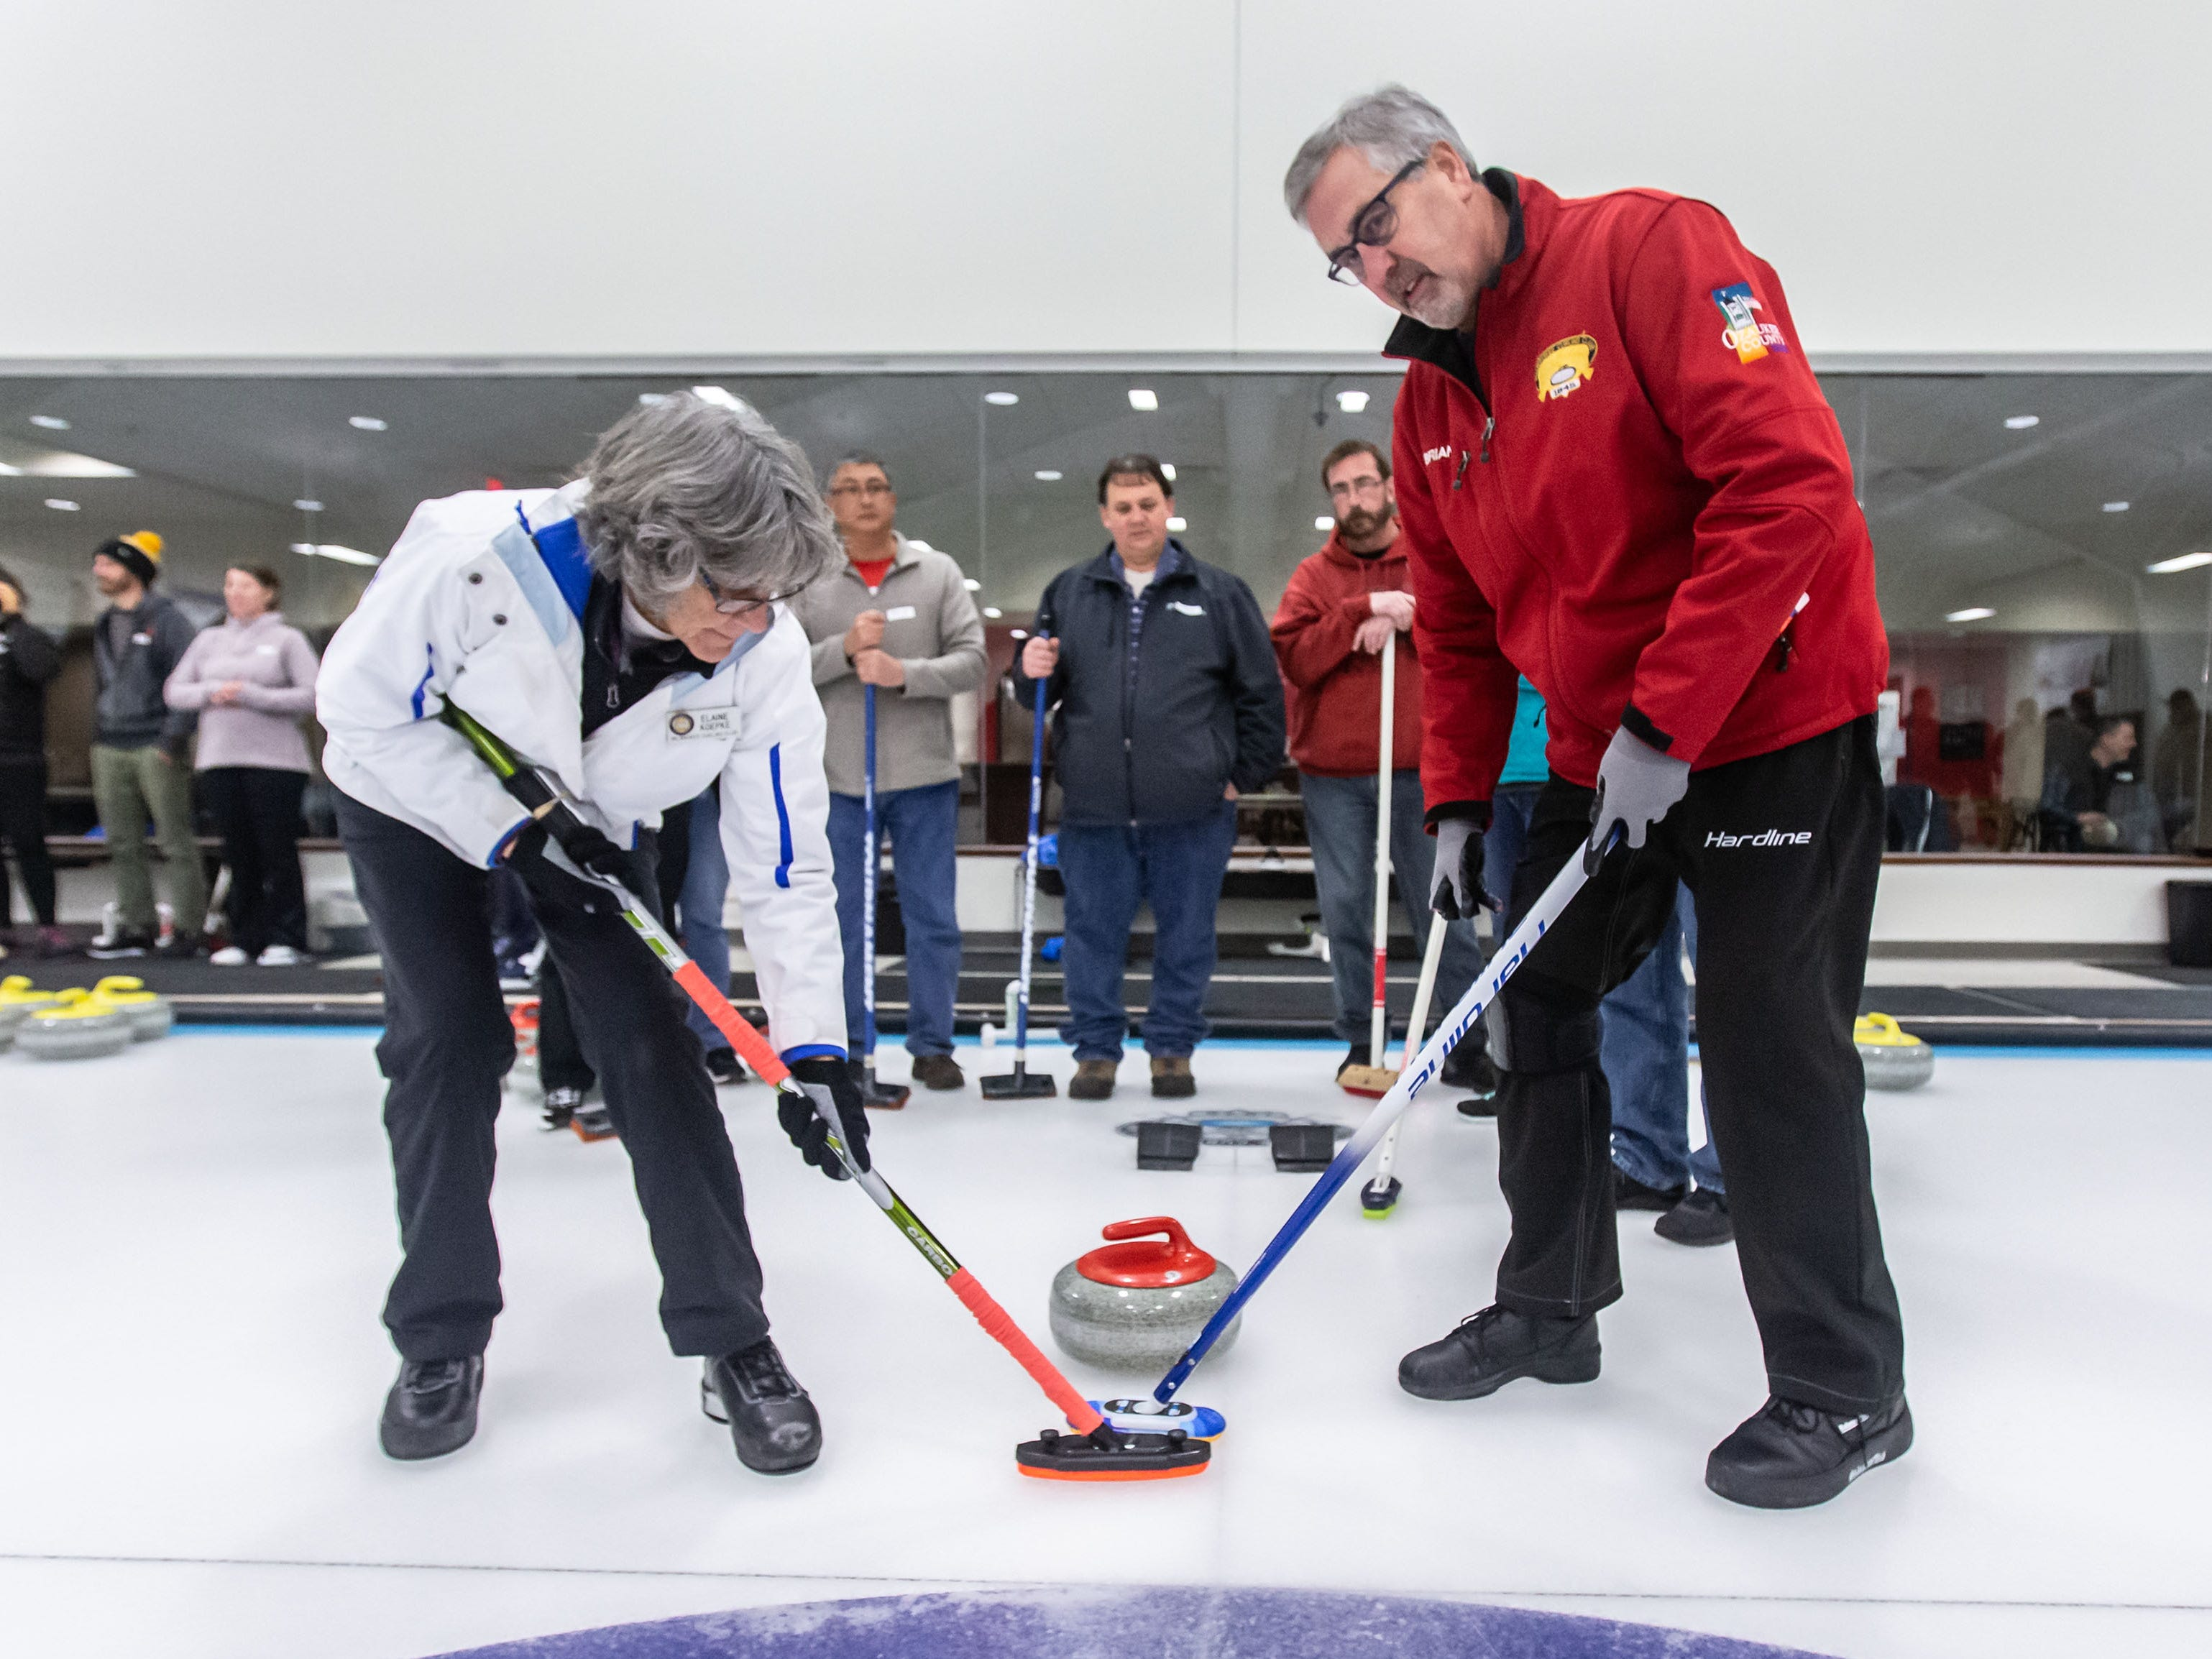 Curling instructors Elaine Koepke and Brian Geiger demonstrate sweeping a stone during the Learn to Curl program at the Milwaukee Curling Club in Cedarburg on Saturday, Dec. 29, 2018.